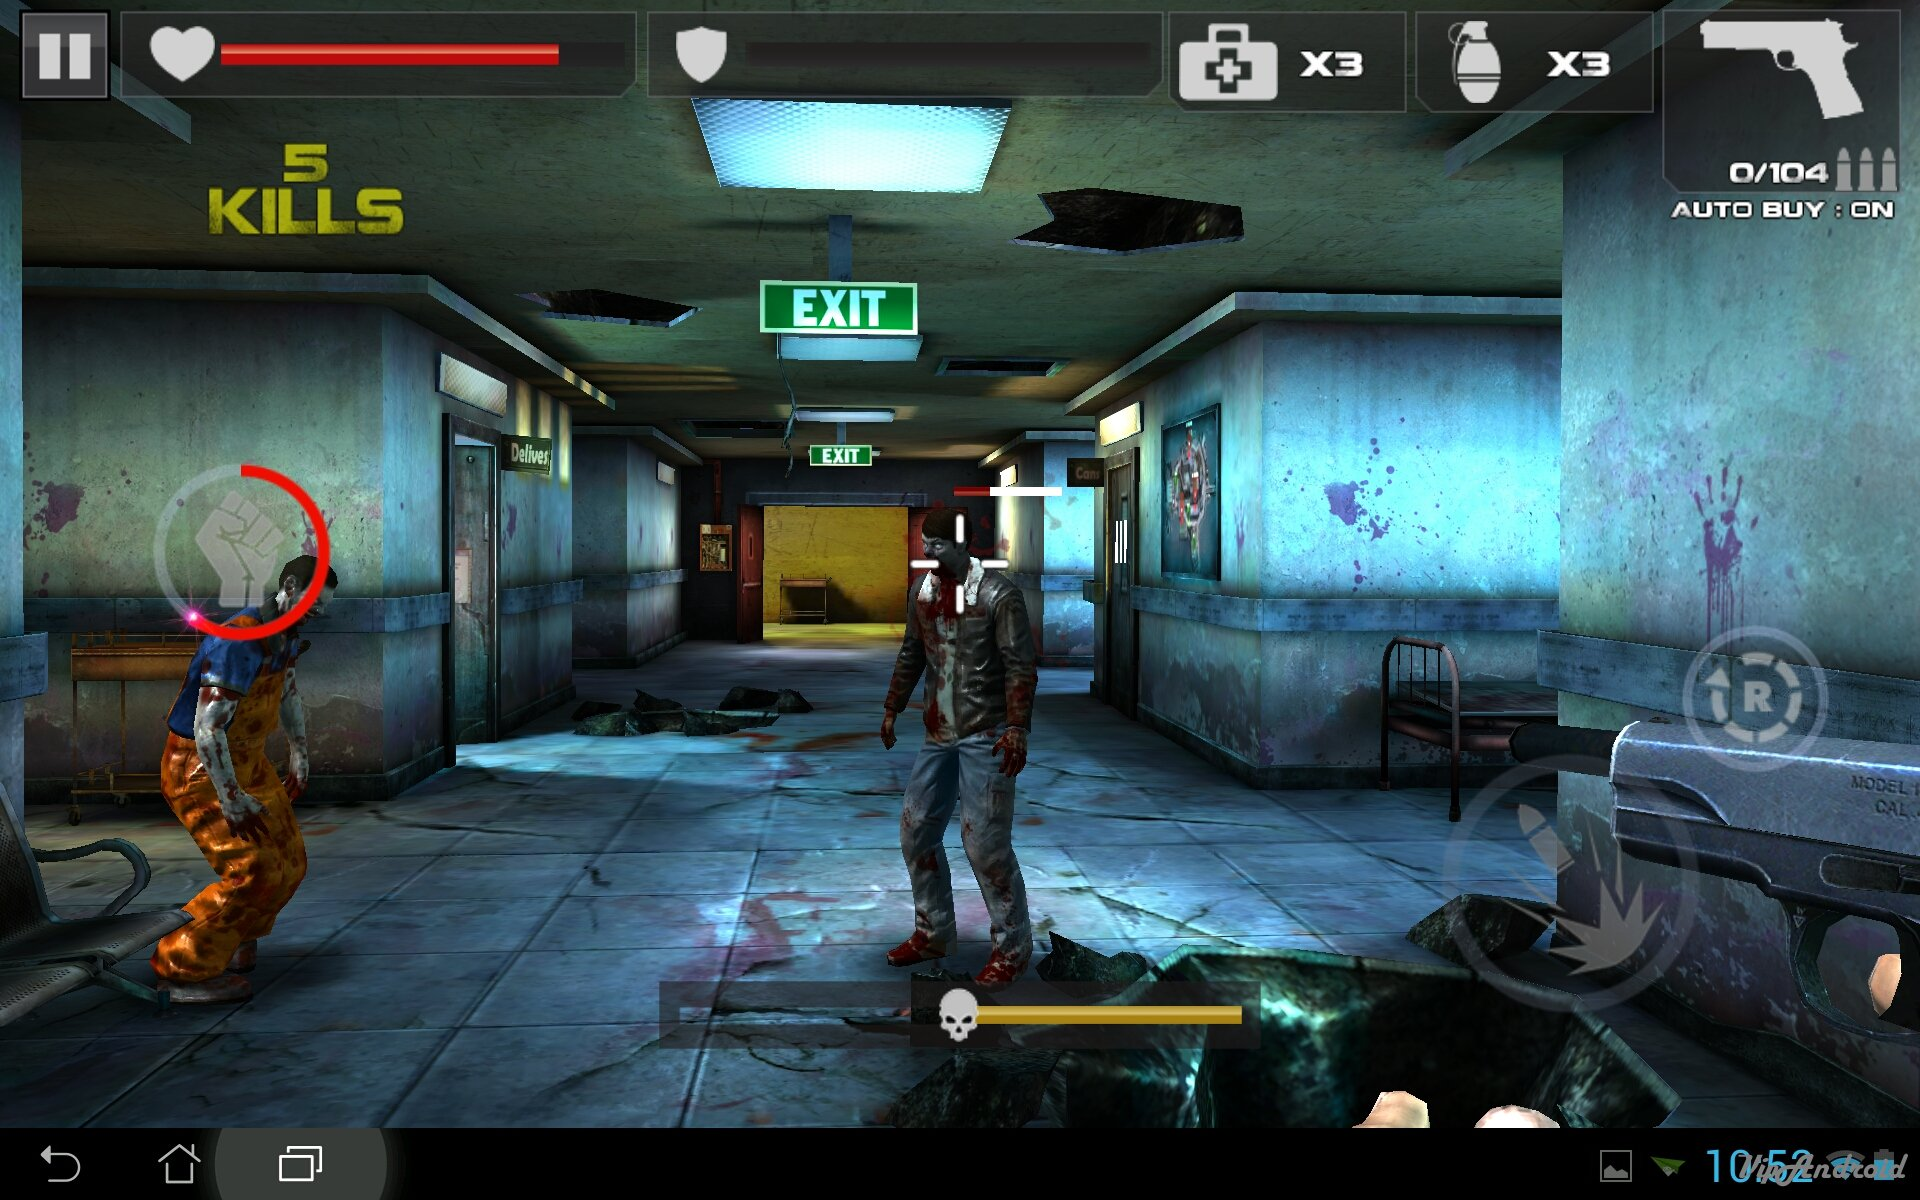 DEAD TARGET: Zombie для Android Экшны, шутеры  - 1402648135_screenshot_2014-06-13-10-52-38